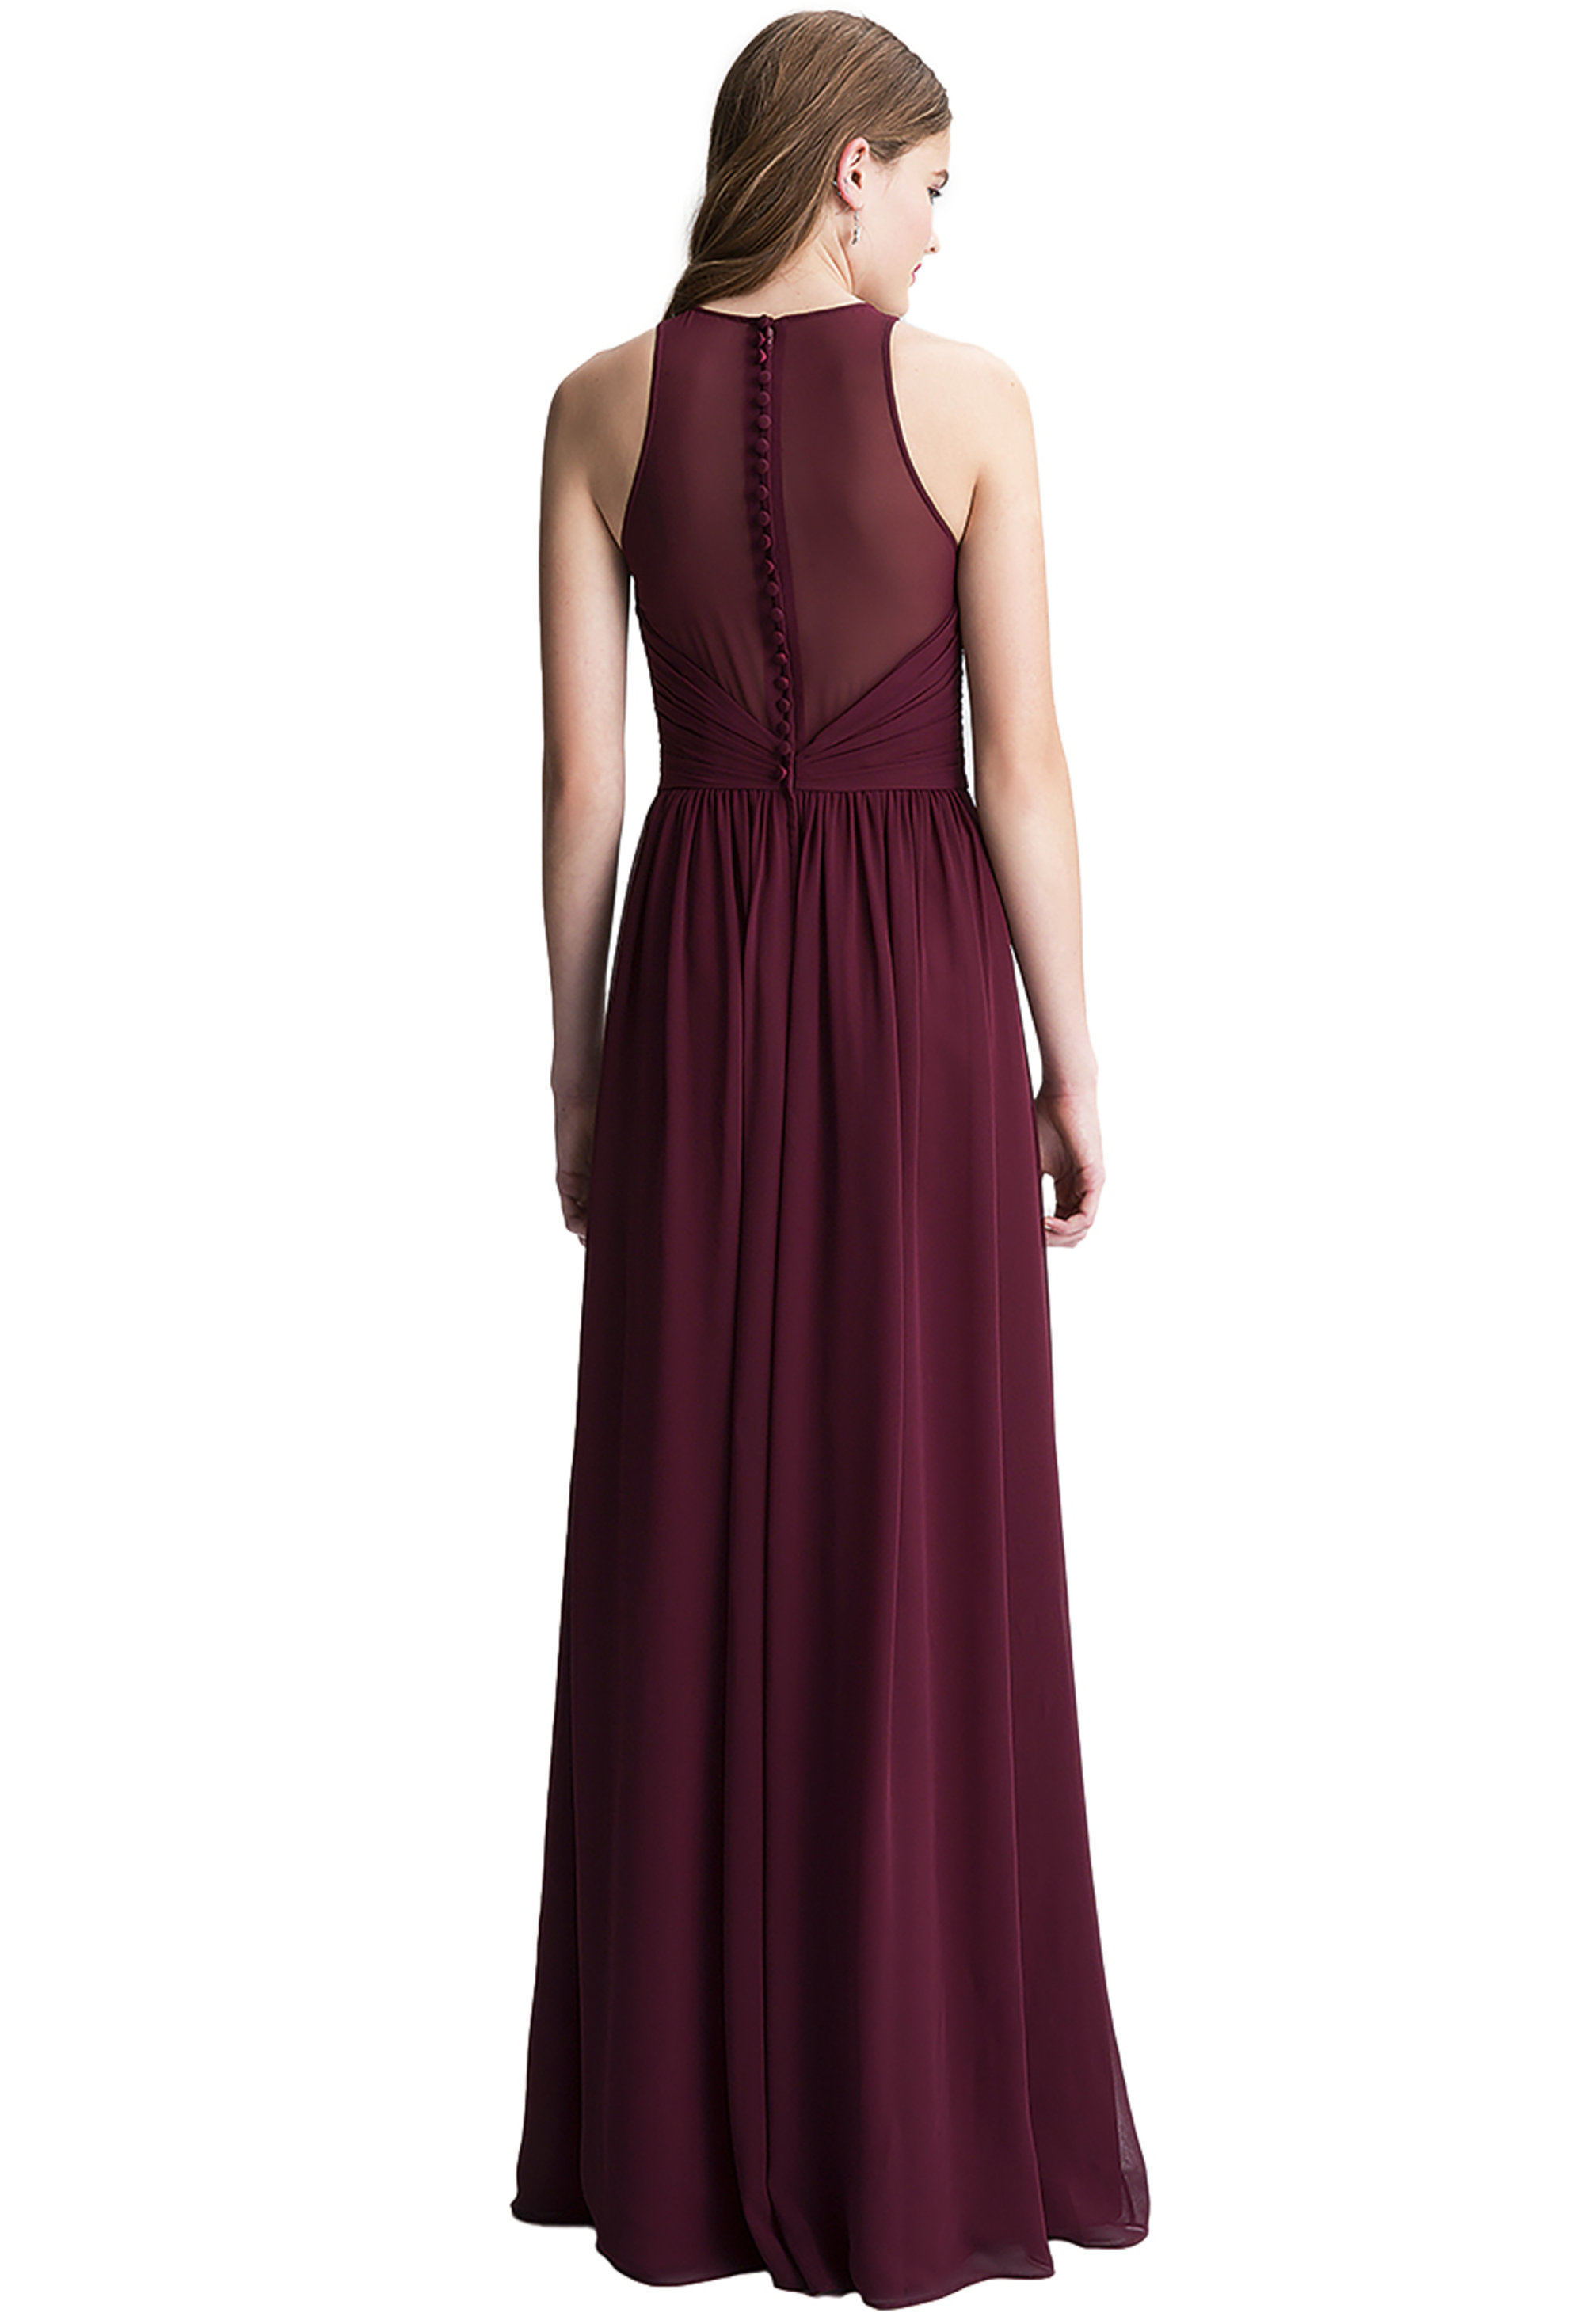 Bill Levkoff CHERRY Chiffon Surplice A-line gown, $220.00 Back